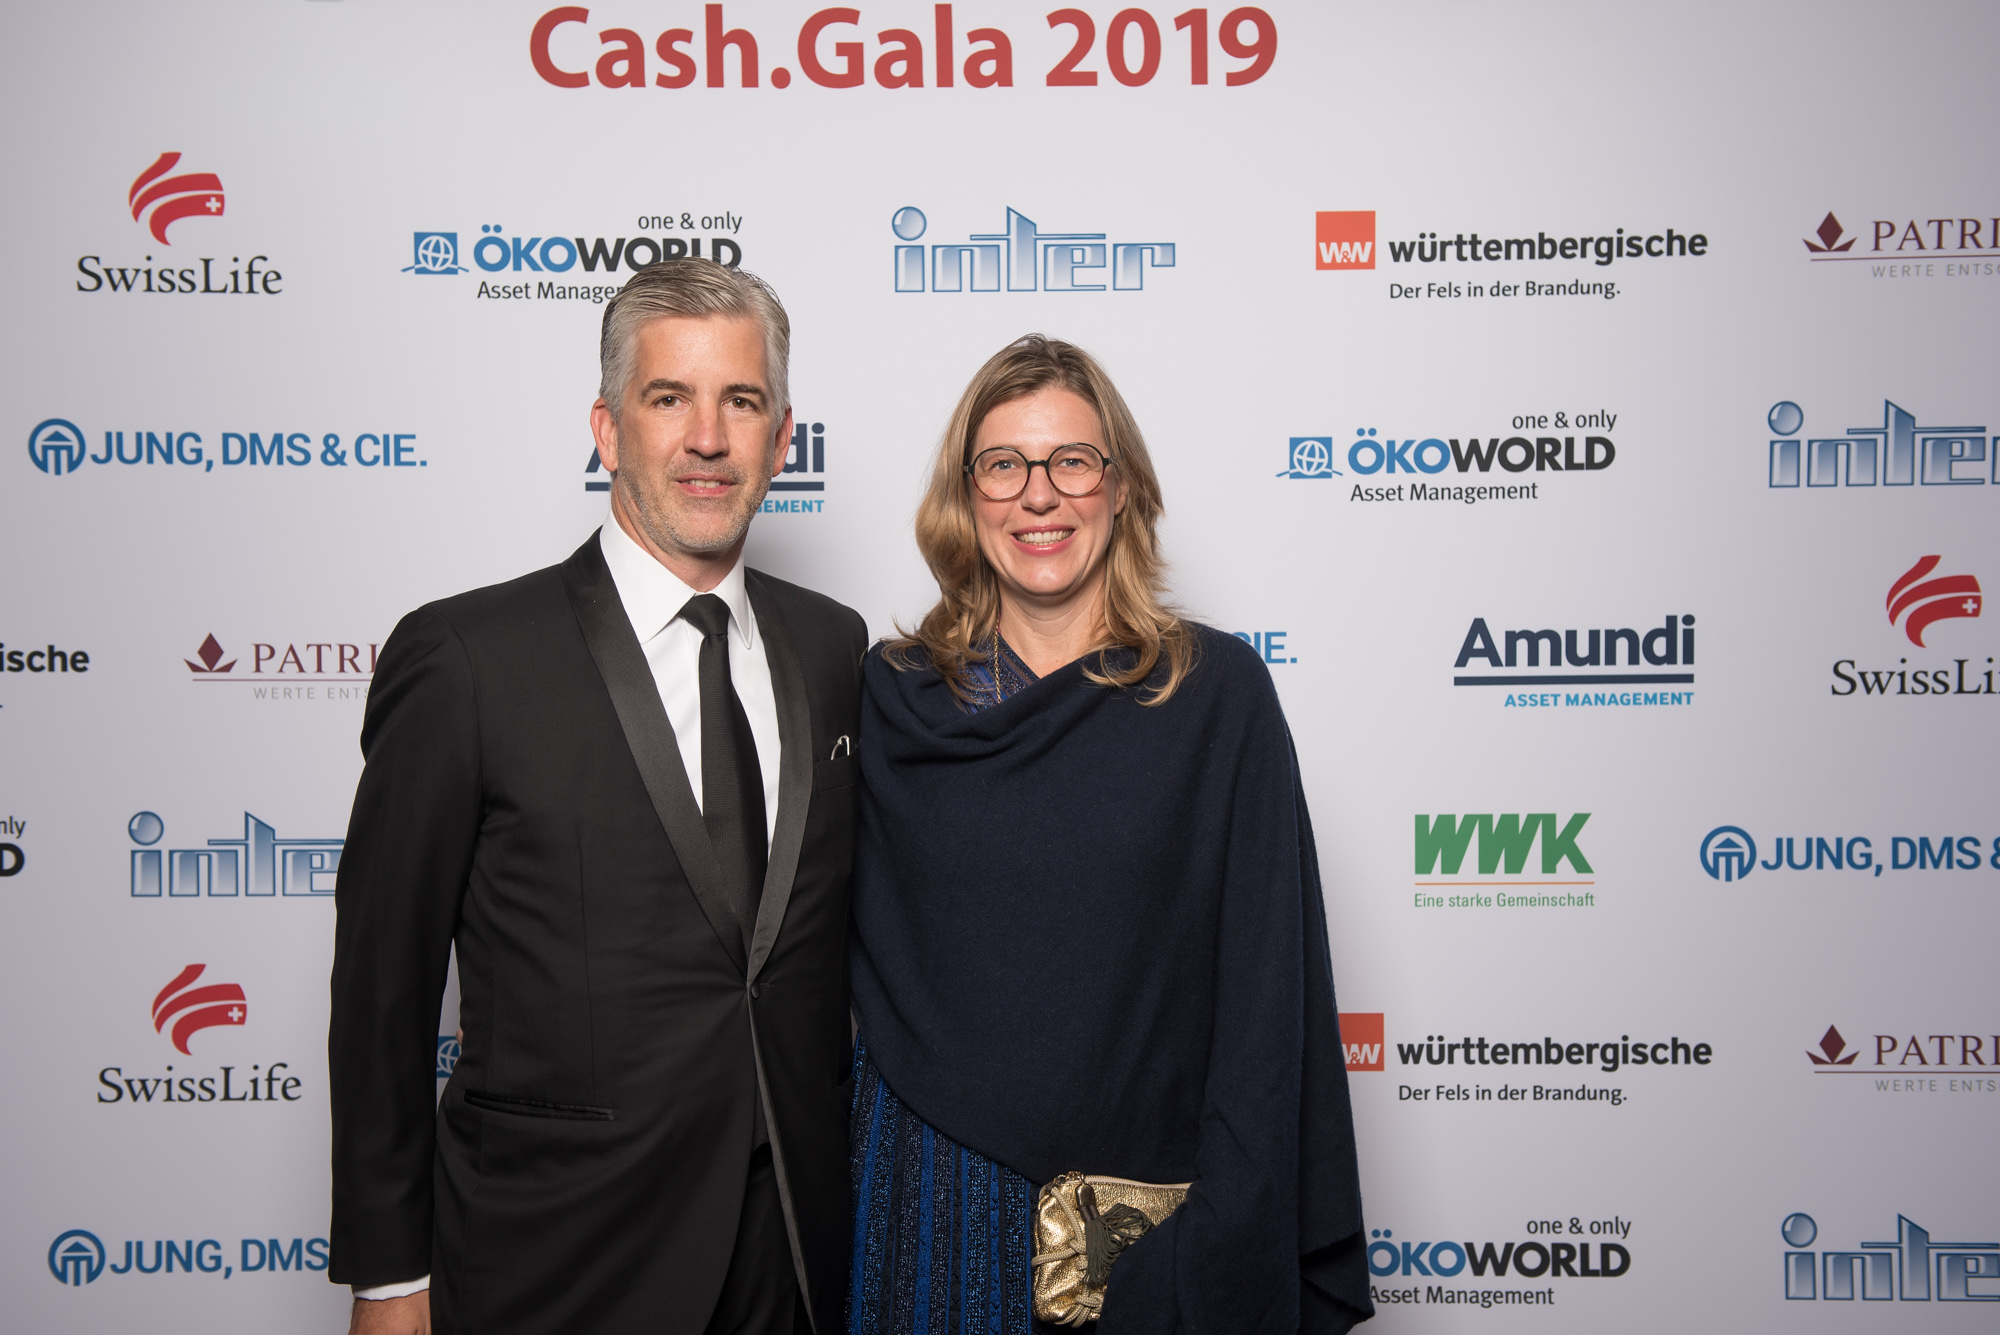 CashGala 2019 0039 AM DSC7056 in Cash.Gala 2019